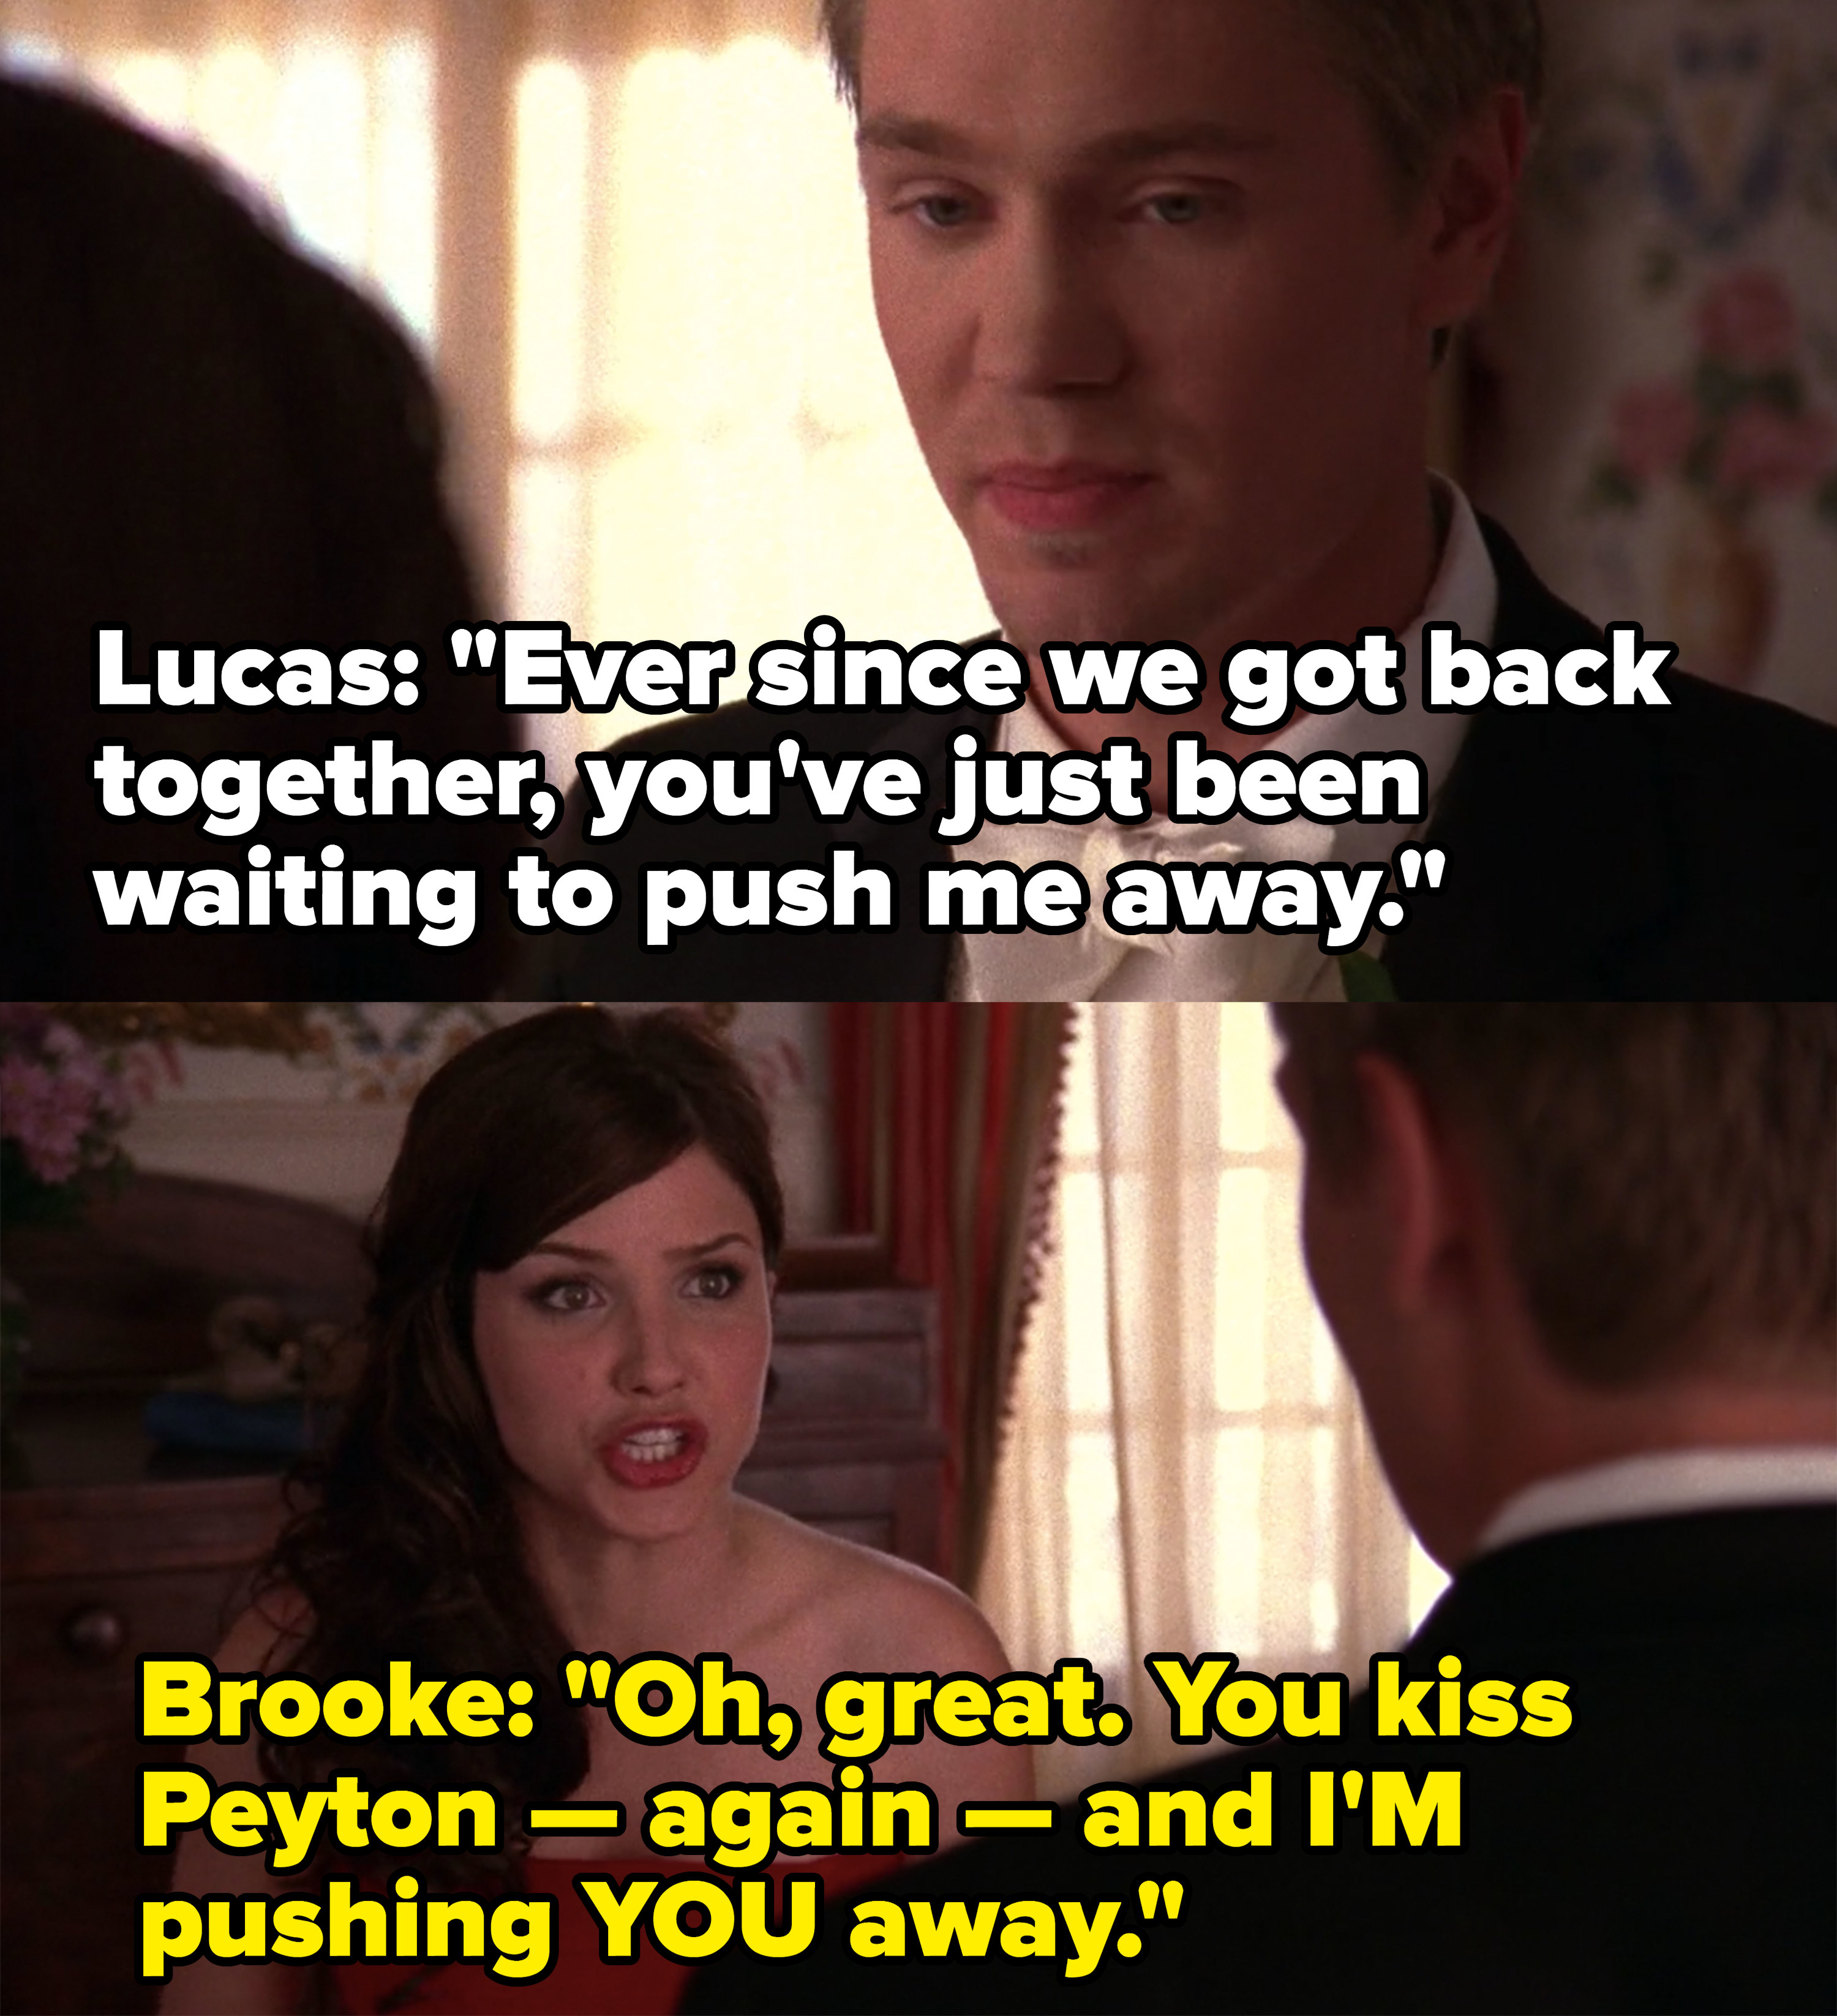 Lucas says Brooke is just trying to push him away, Brooke calls him out for kissing Peyton yet again